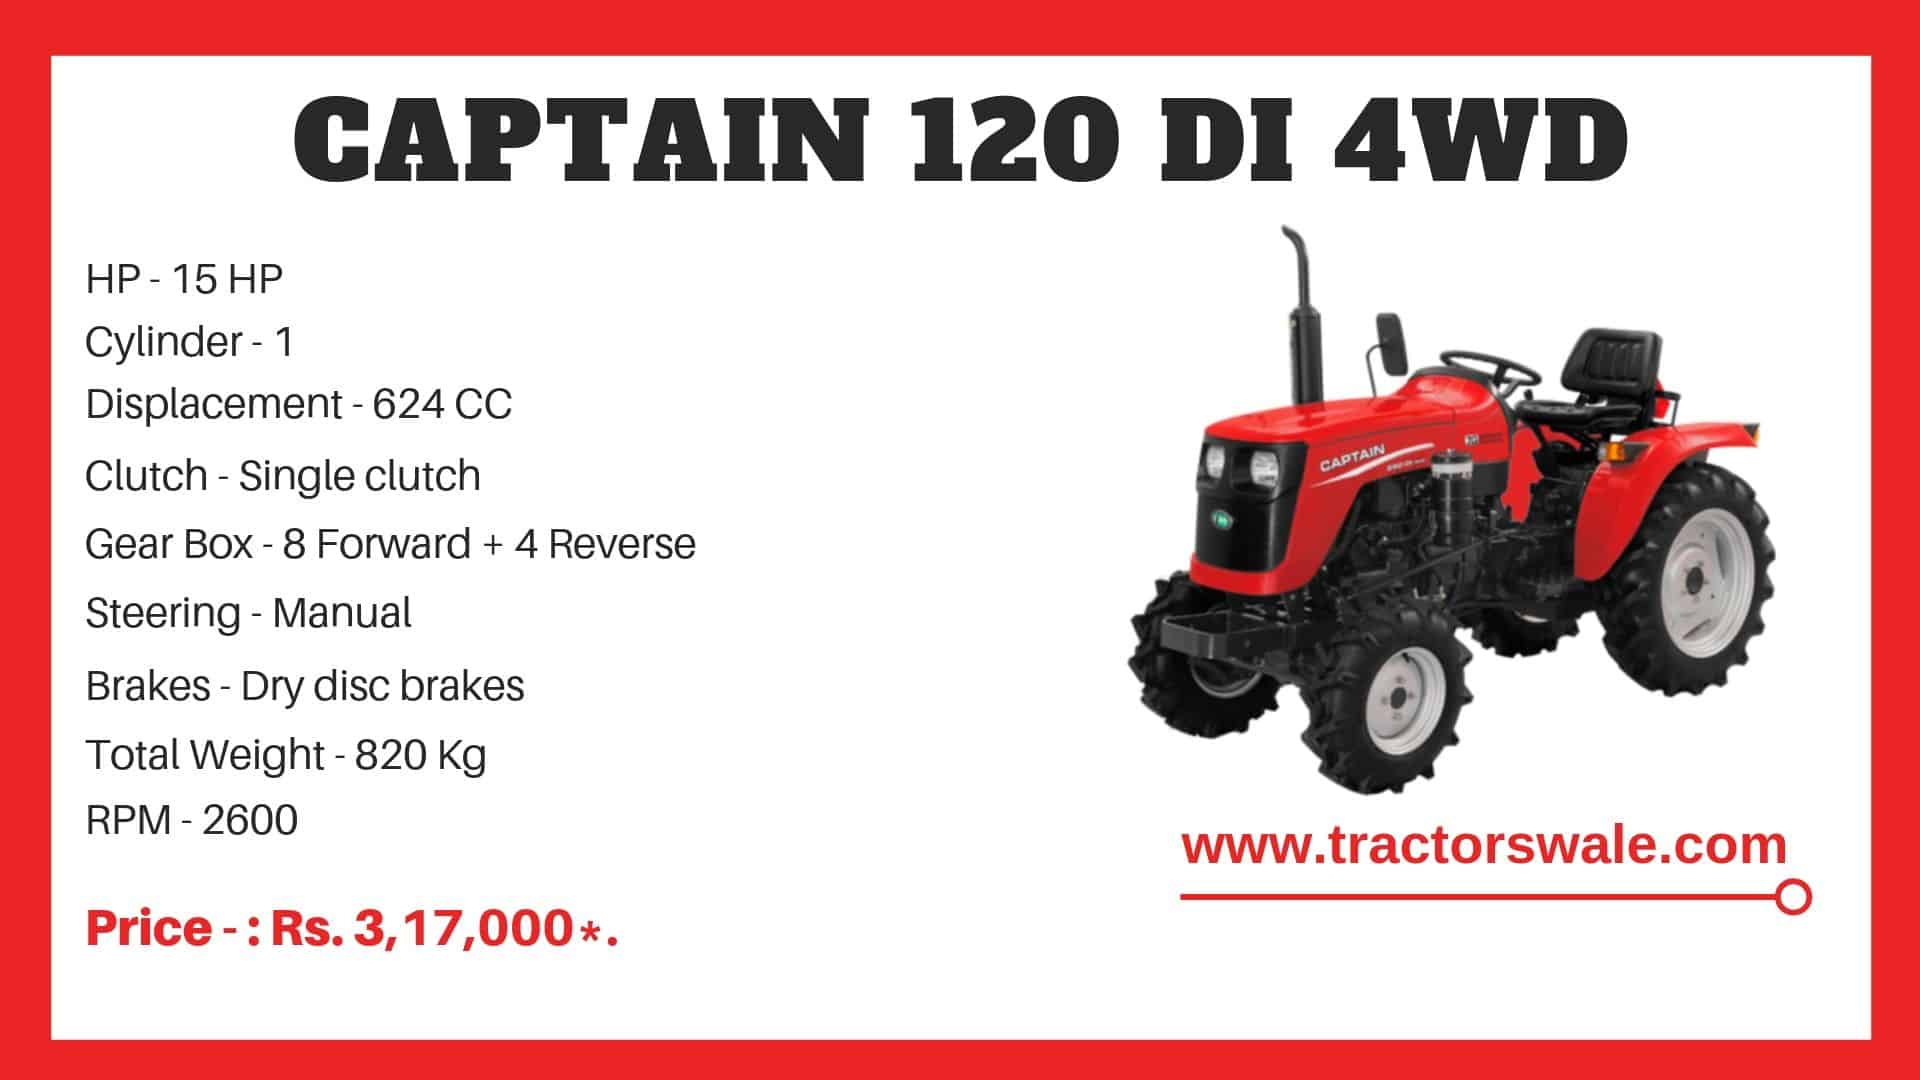 Specification of Captain 120 DI 4WD